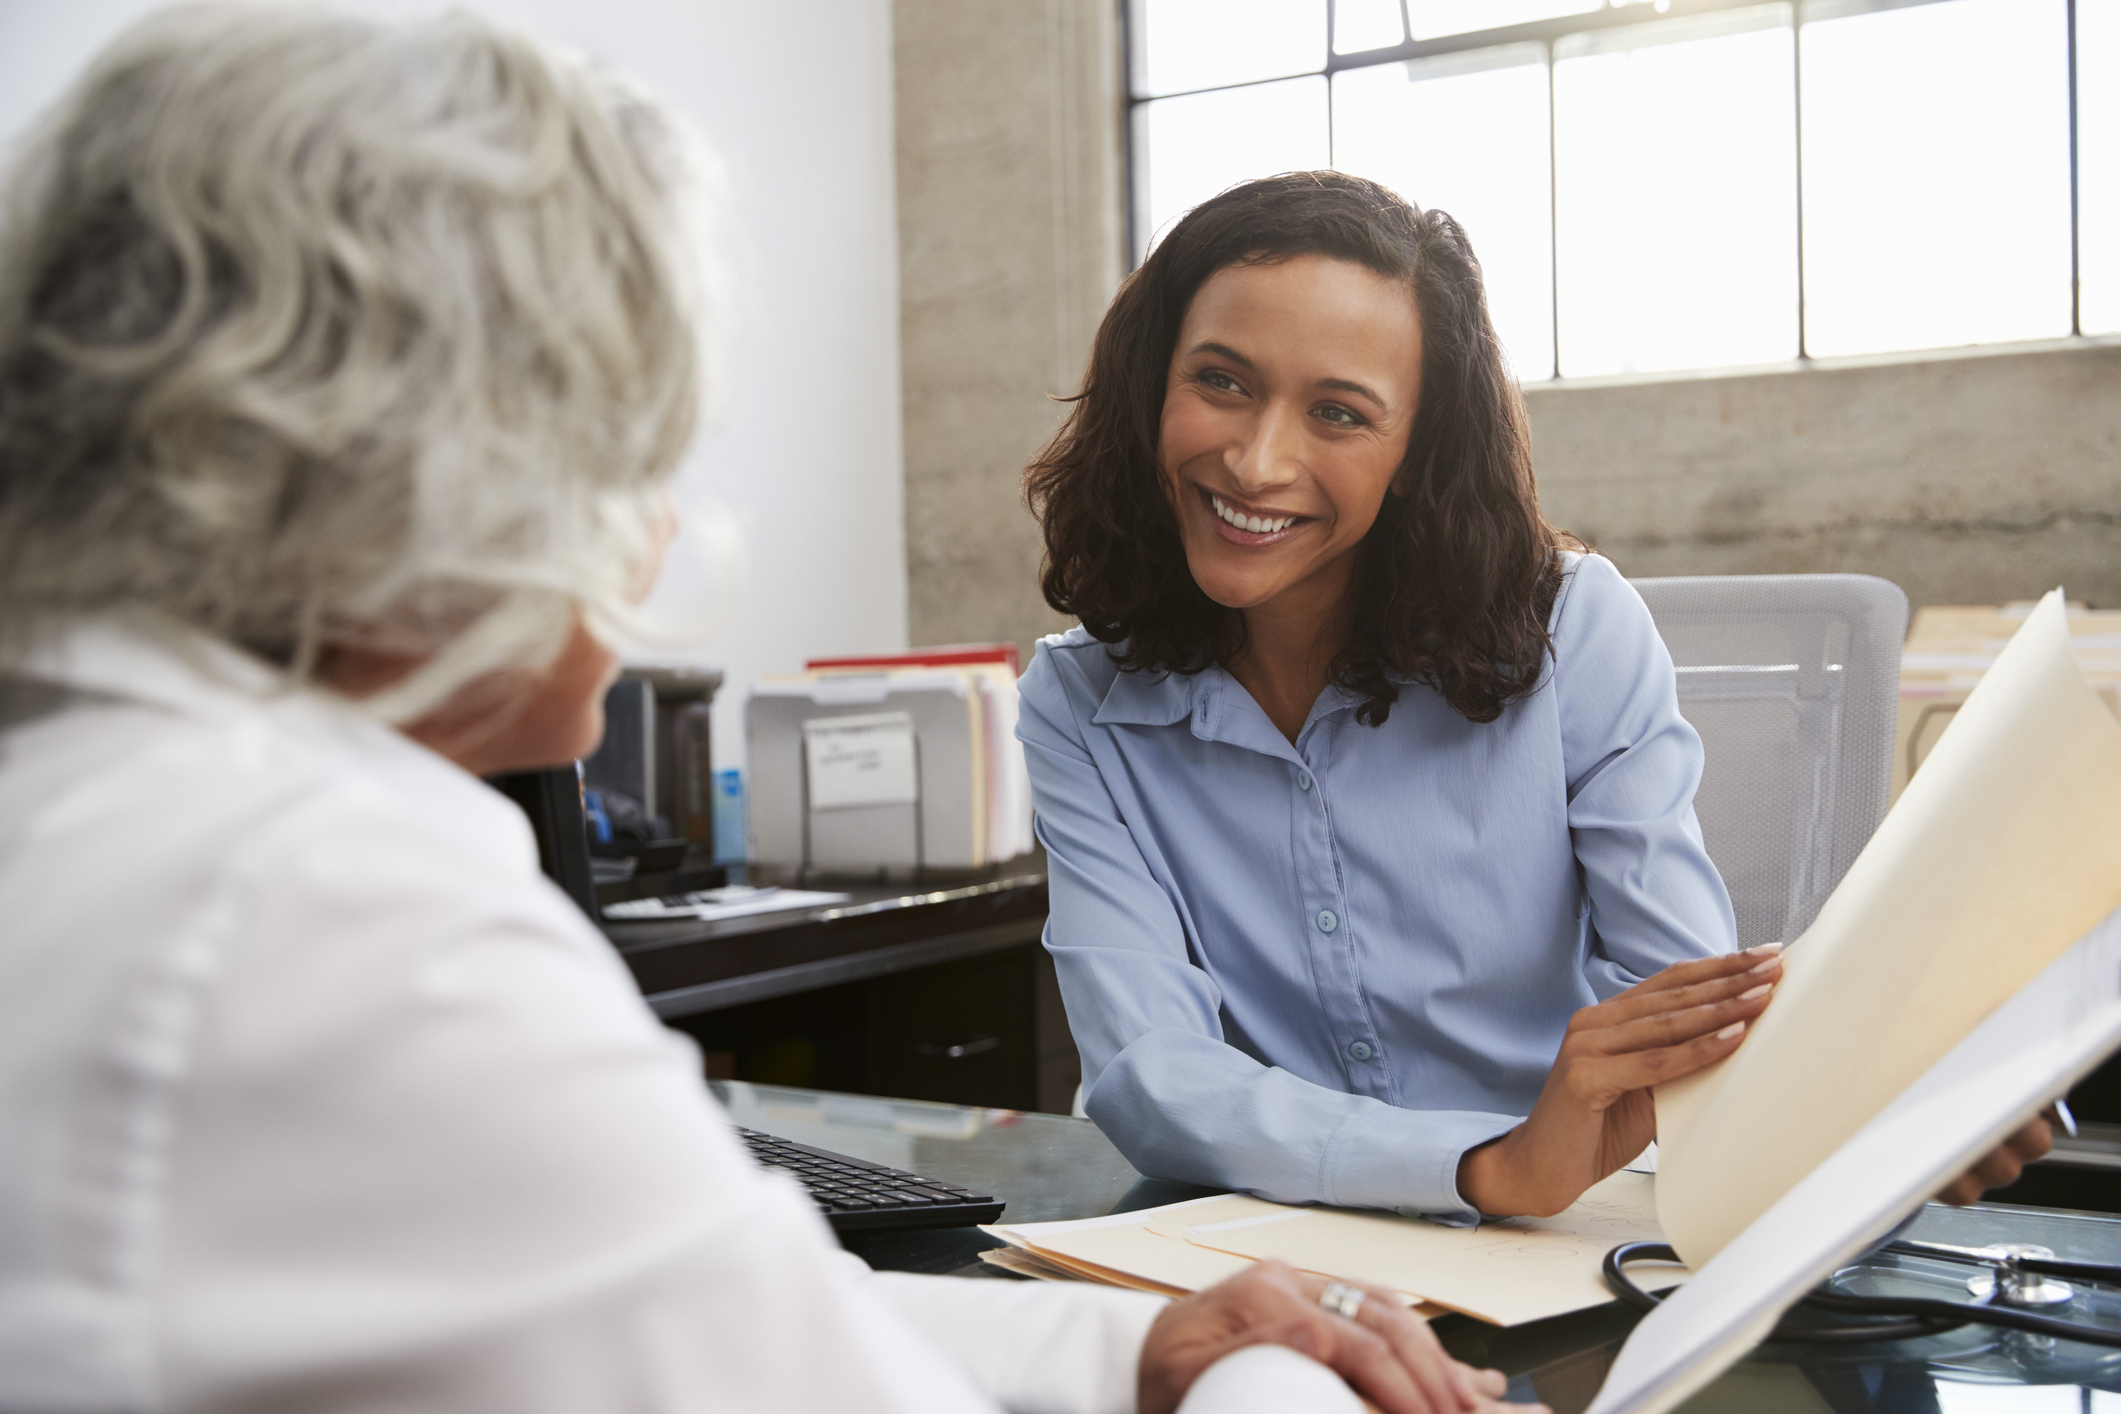 Stock photo of a woman smiling and drawing a customer's attention to paperwork